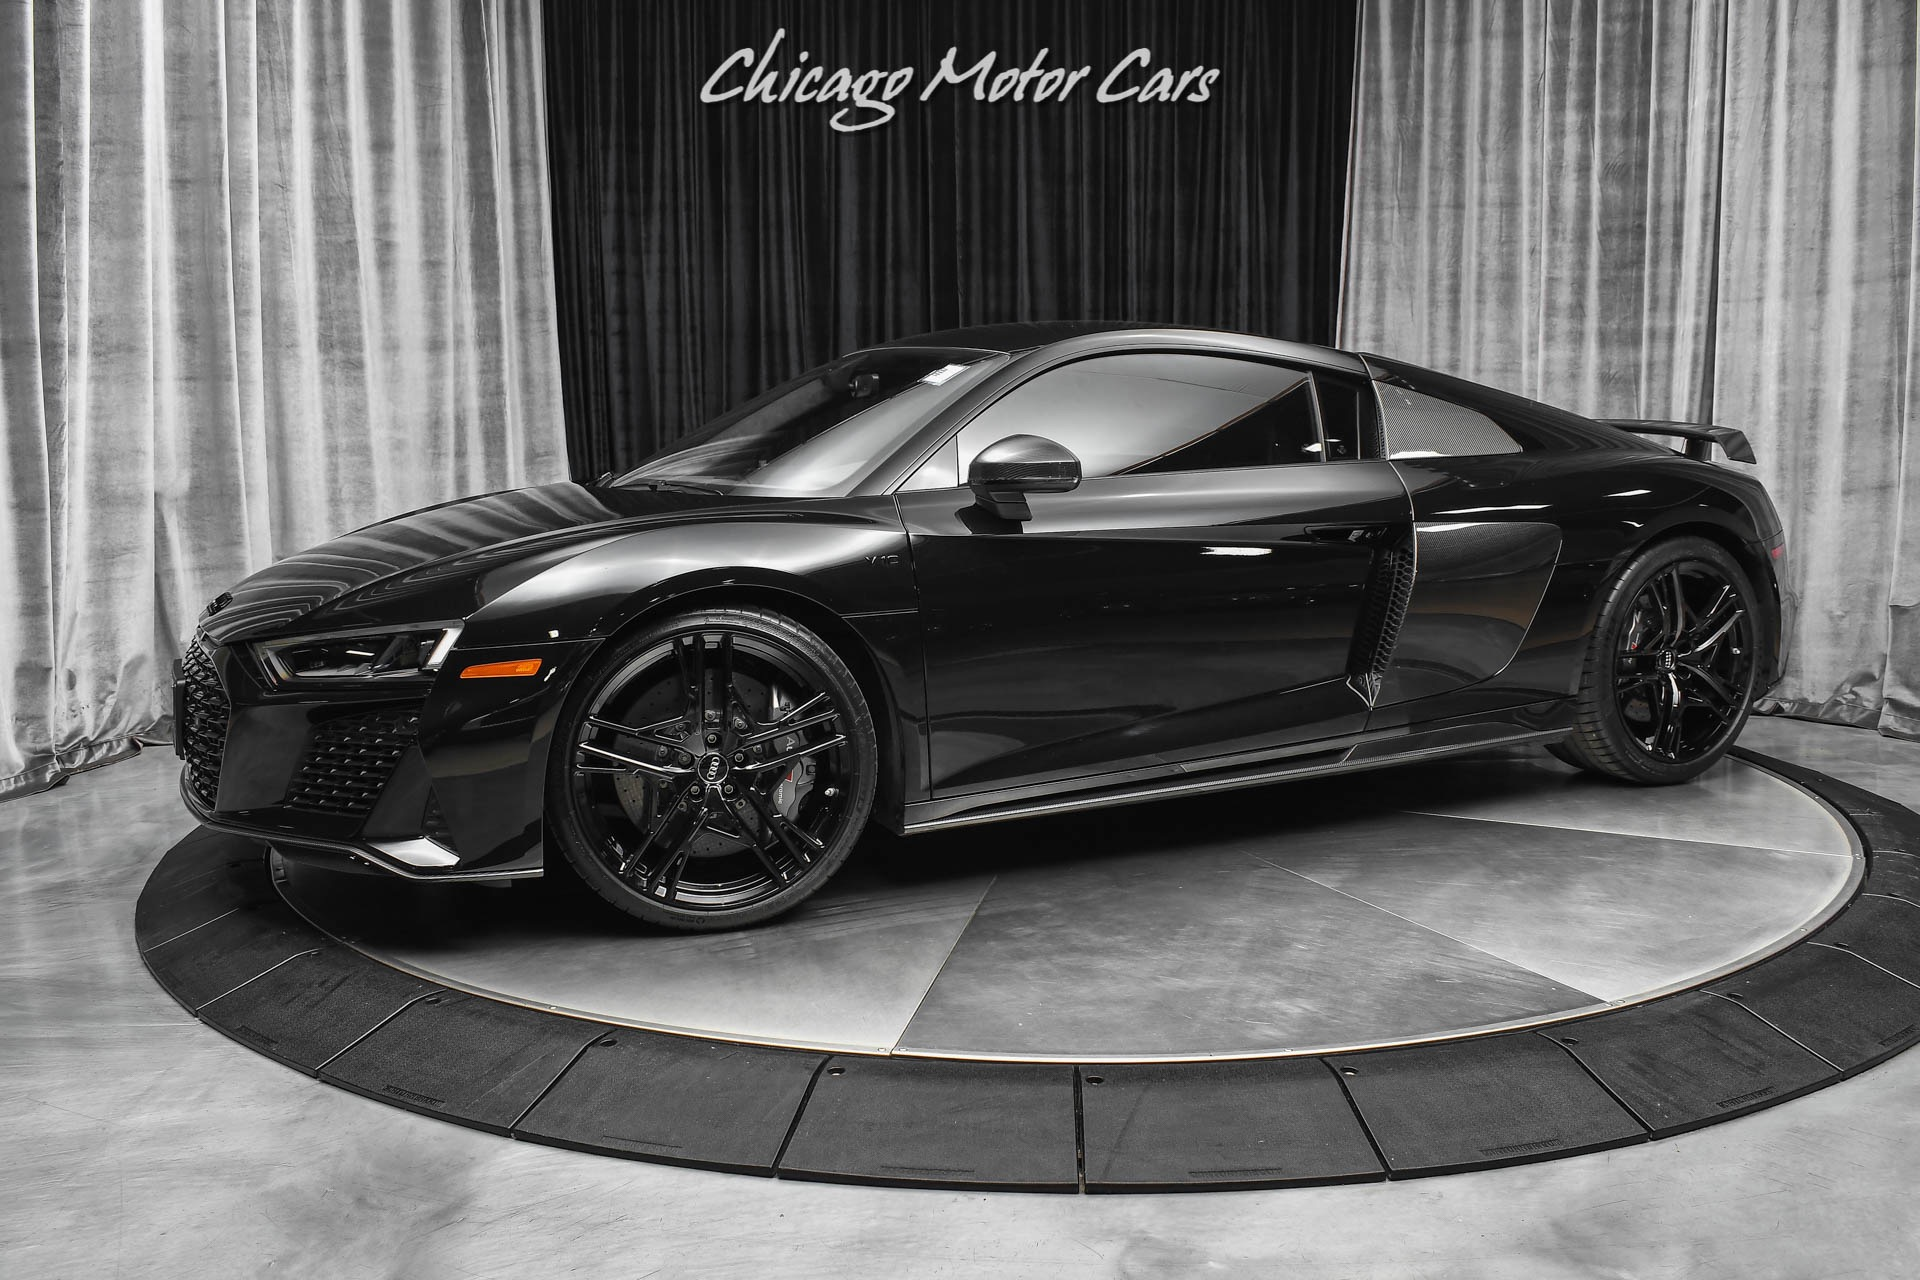 Used 2020 Audi R8 5.2 quattro V10 performance Coupe SPORT ...